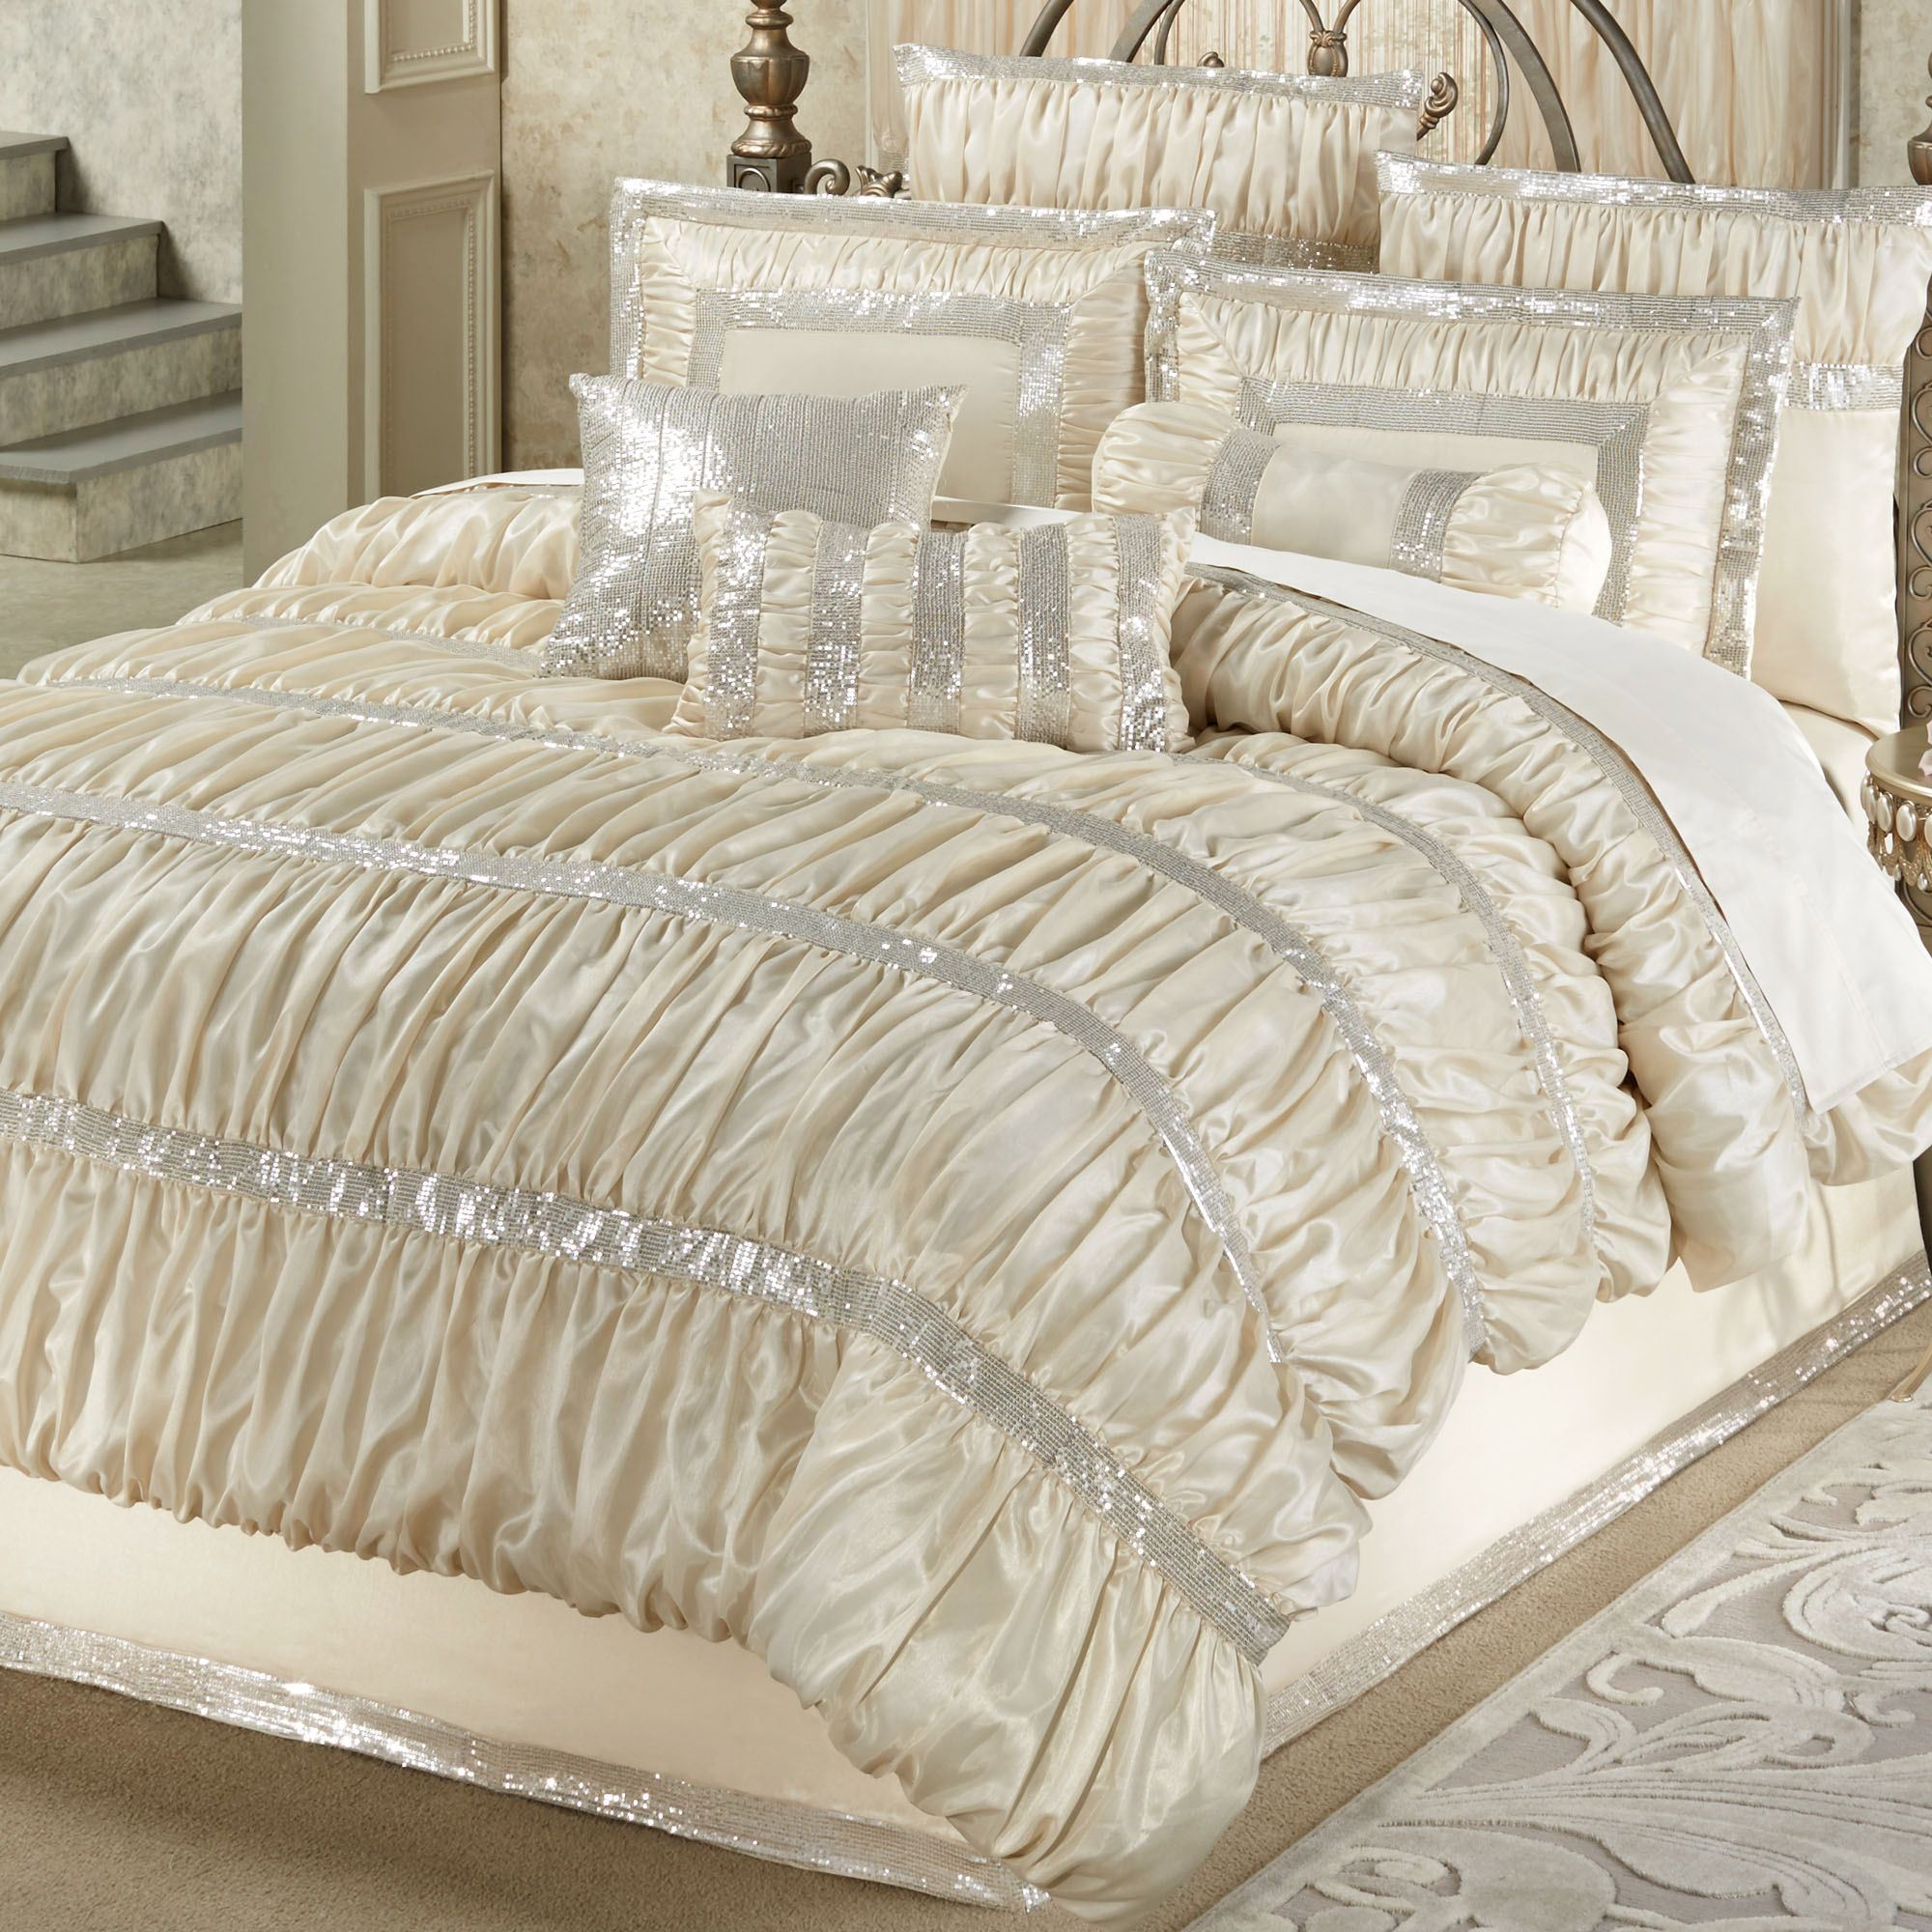 How To Properly Clean Your Bedding Set?